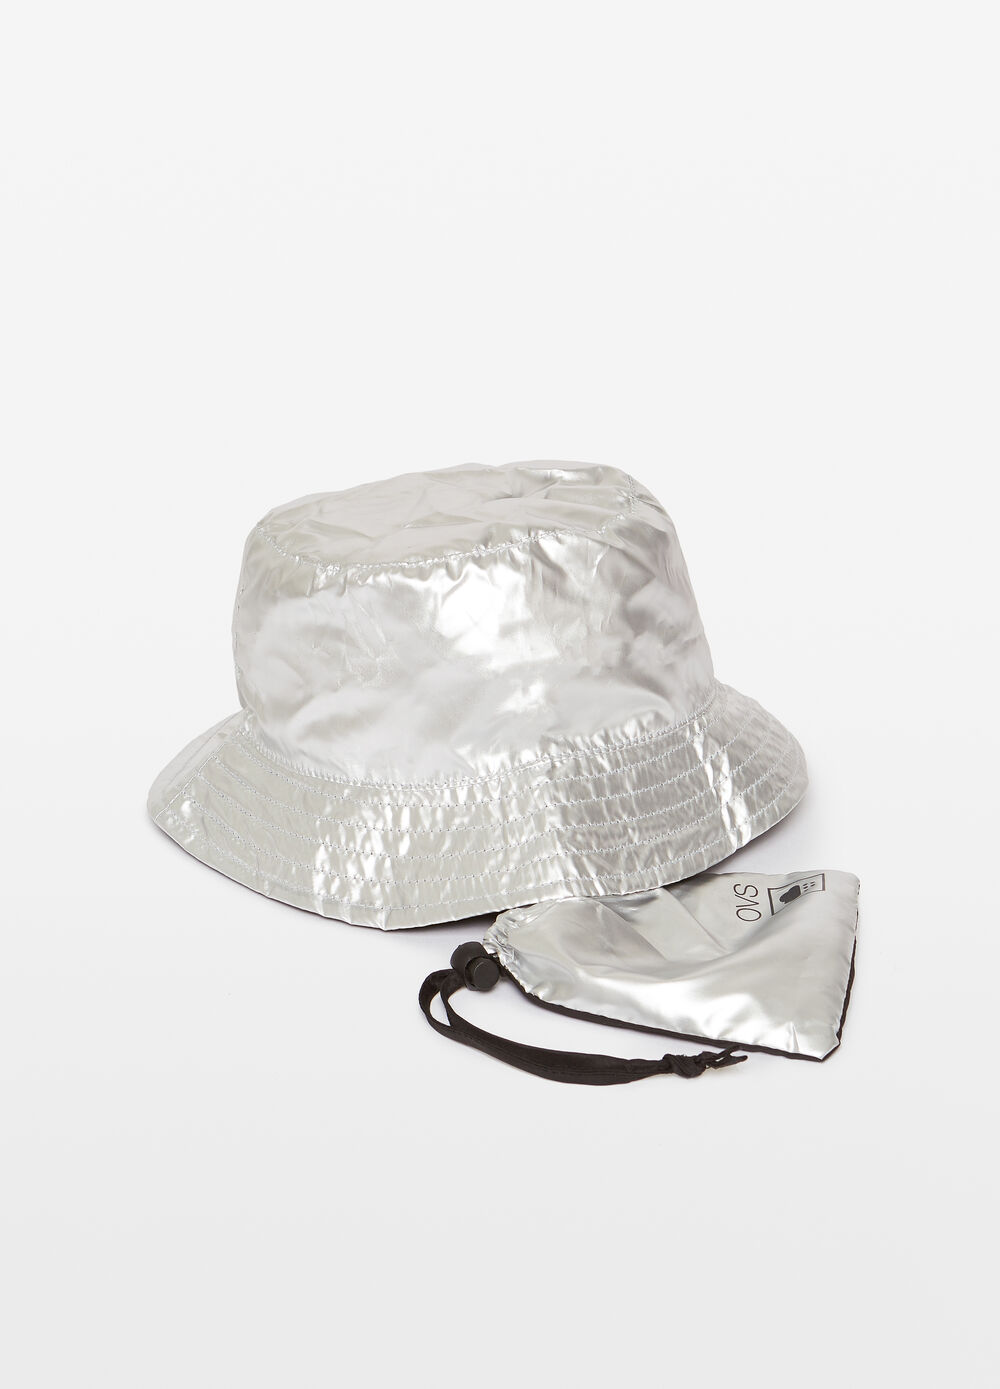 Two-tone waterproof cloche hat with case